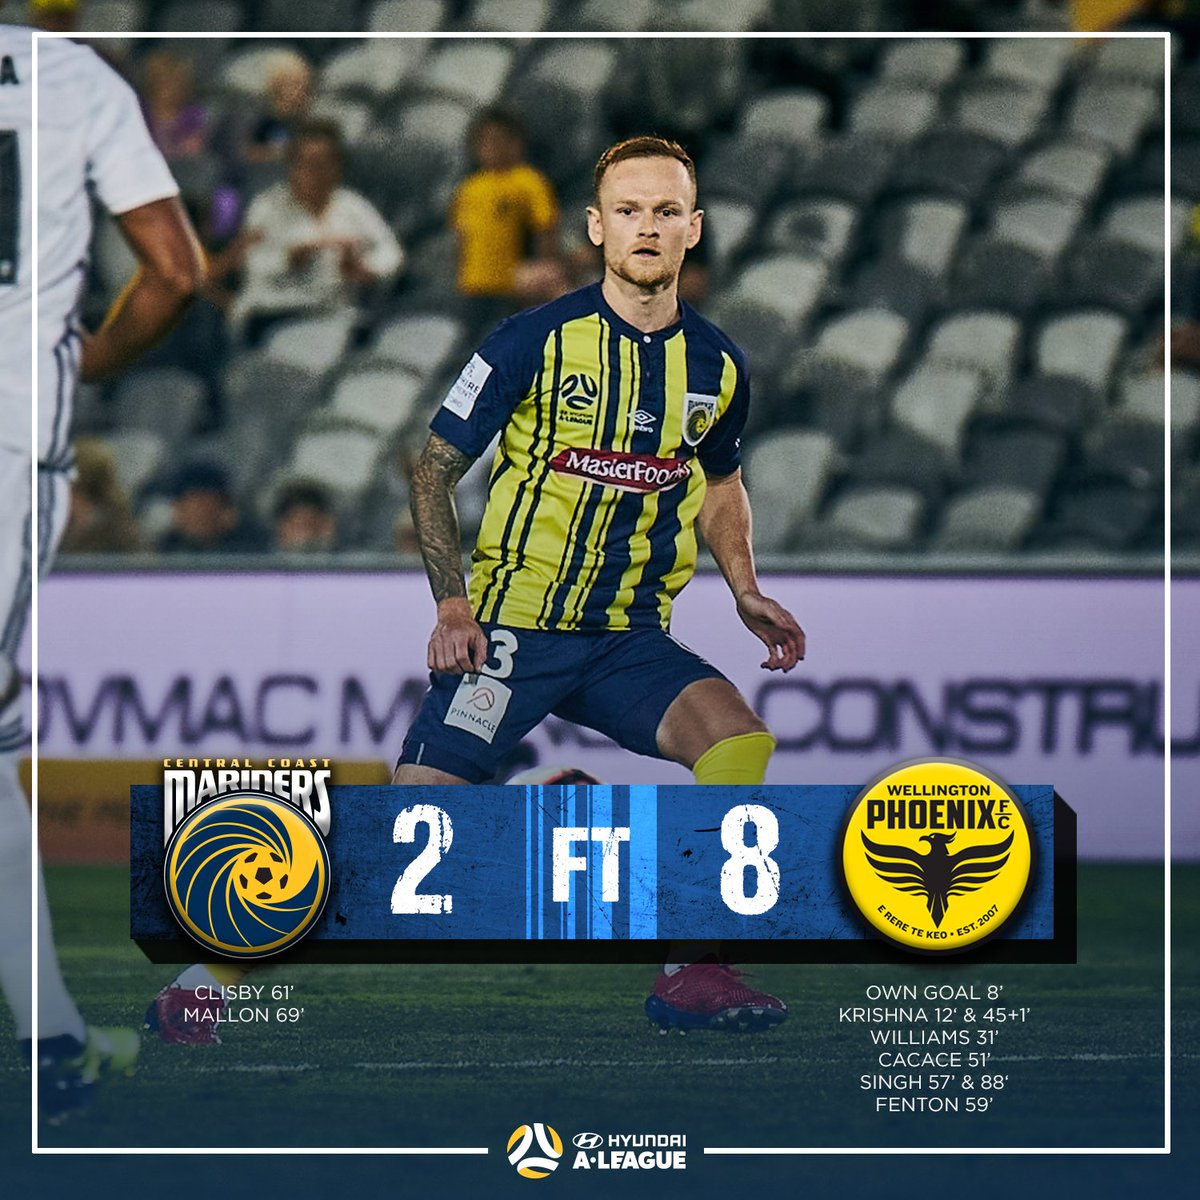 Central Coast Mariners's photo on #ccmfc